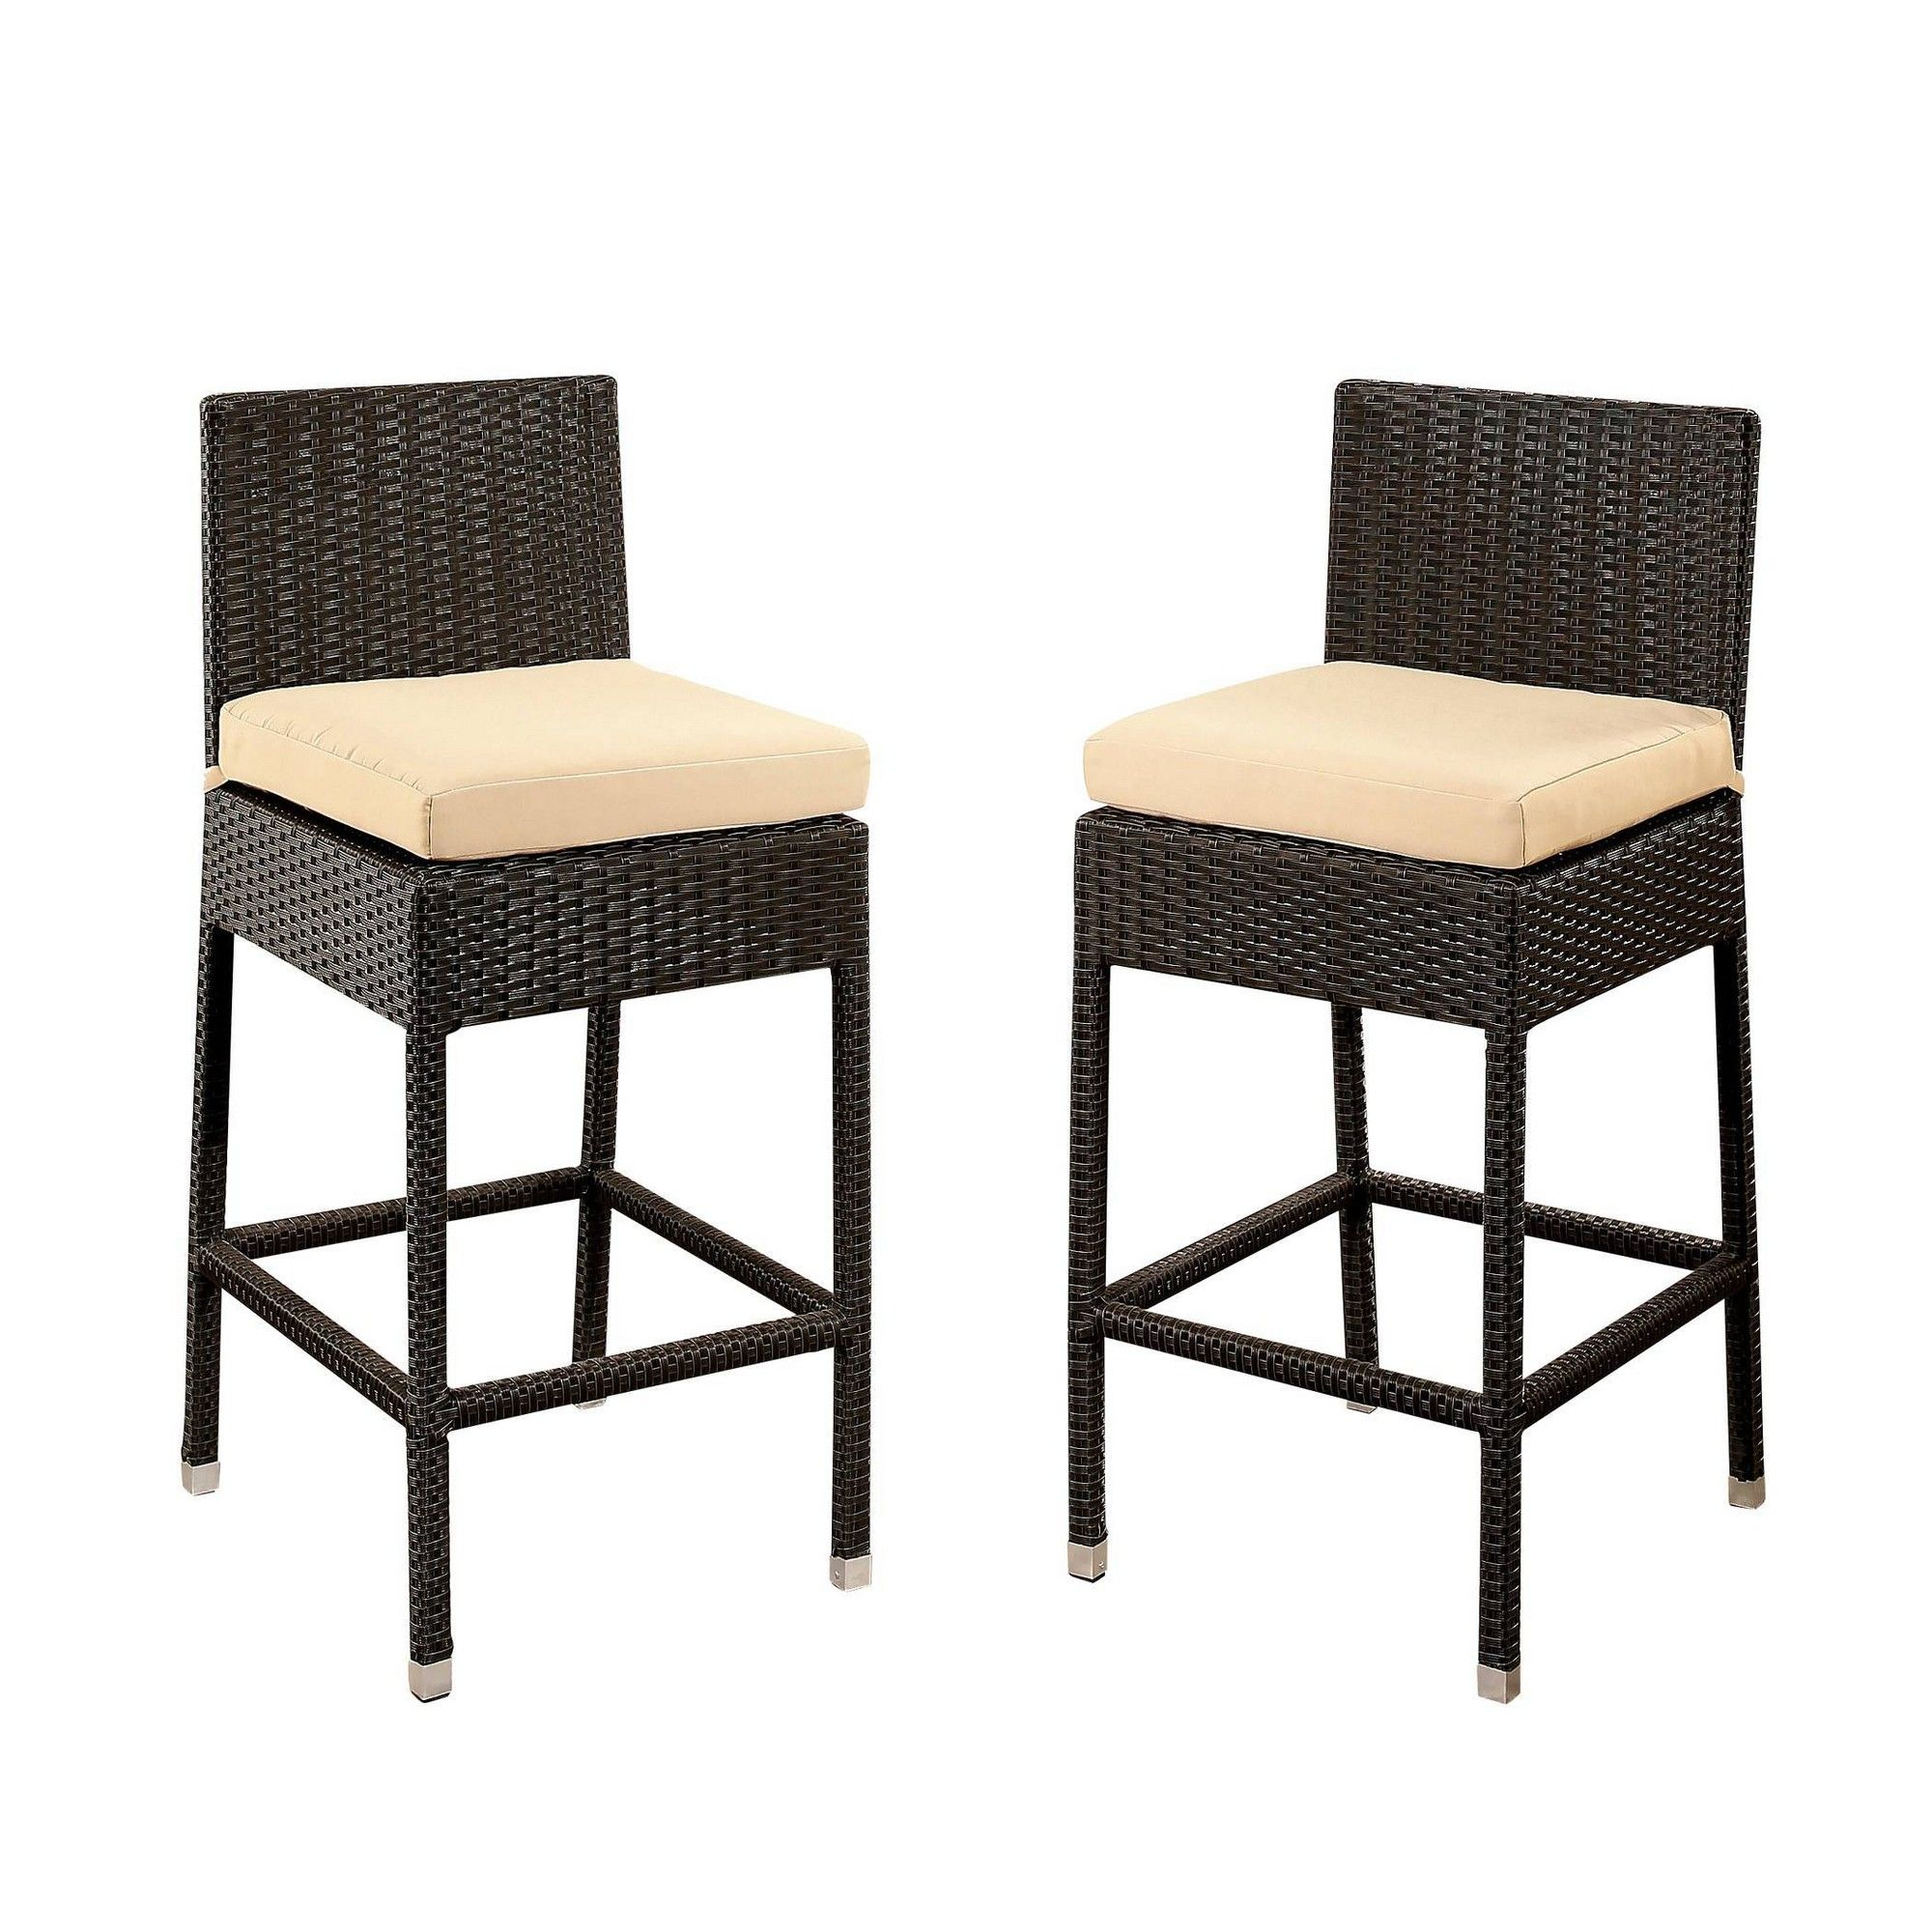 Cailen outdoor wicker bar stools with cushions set of 2